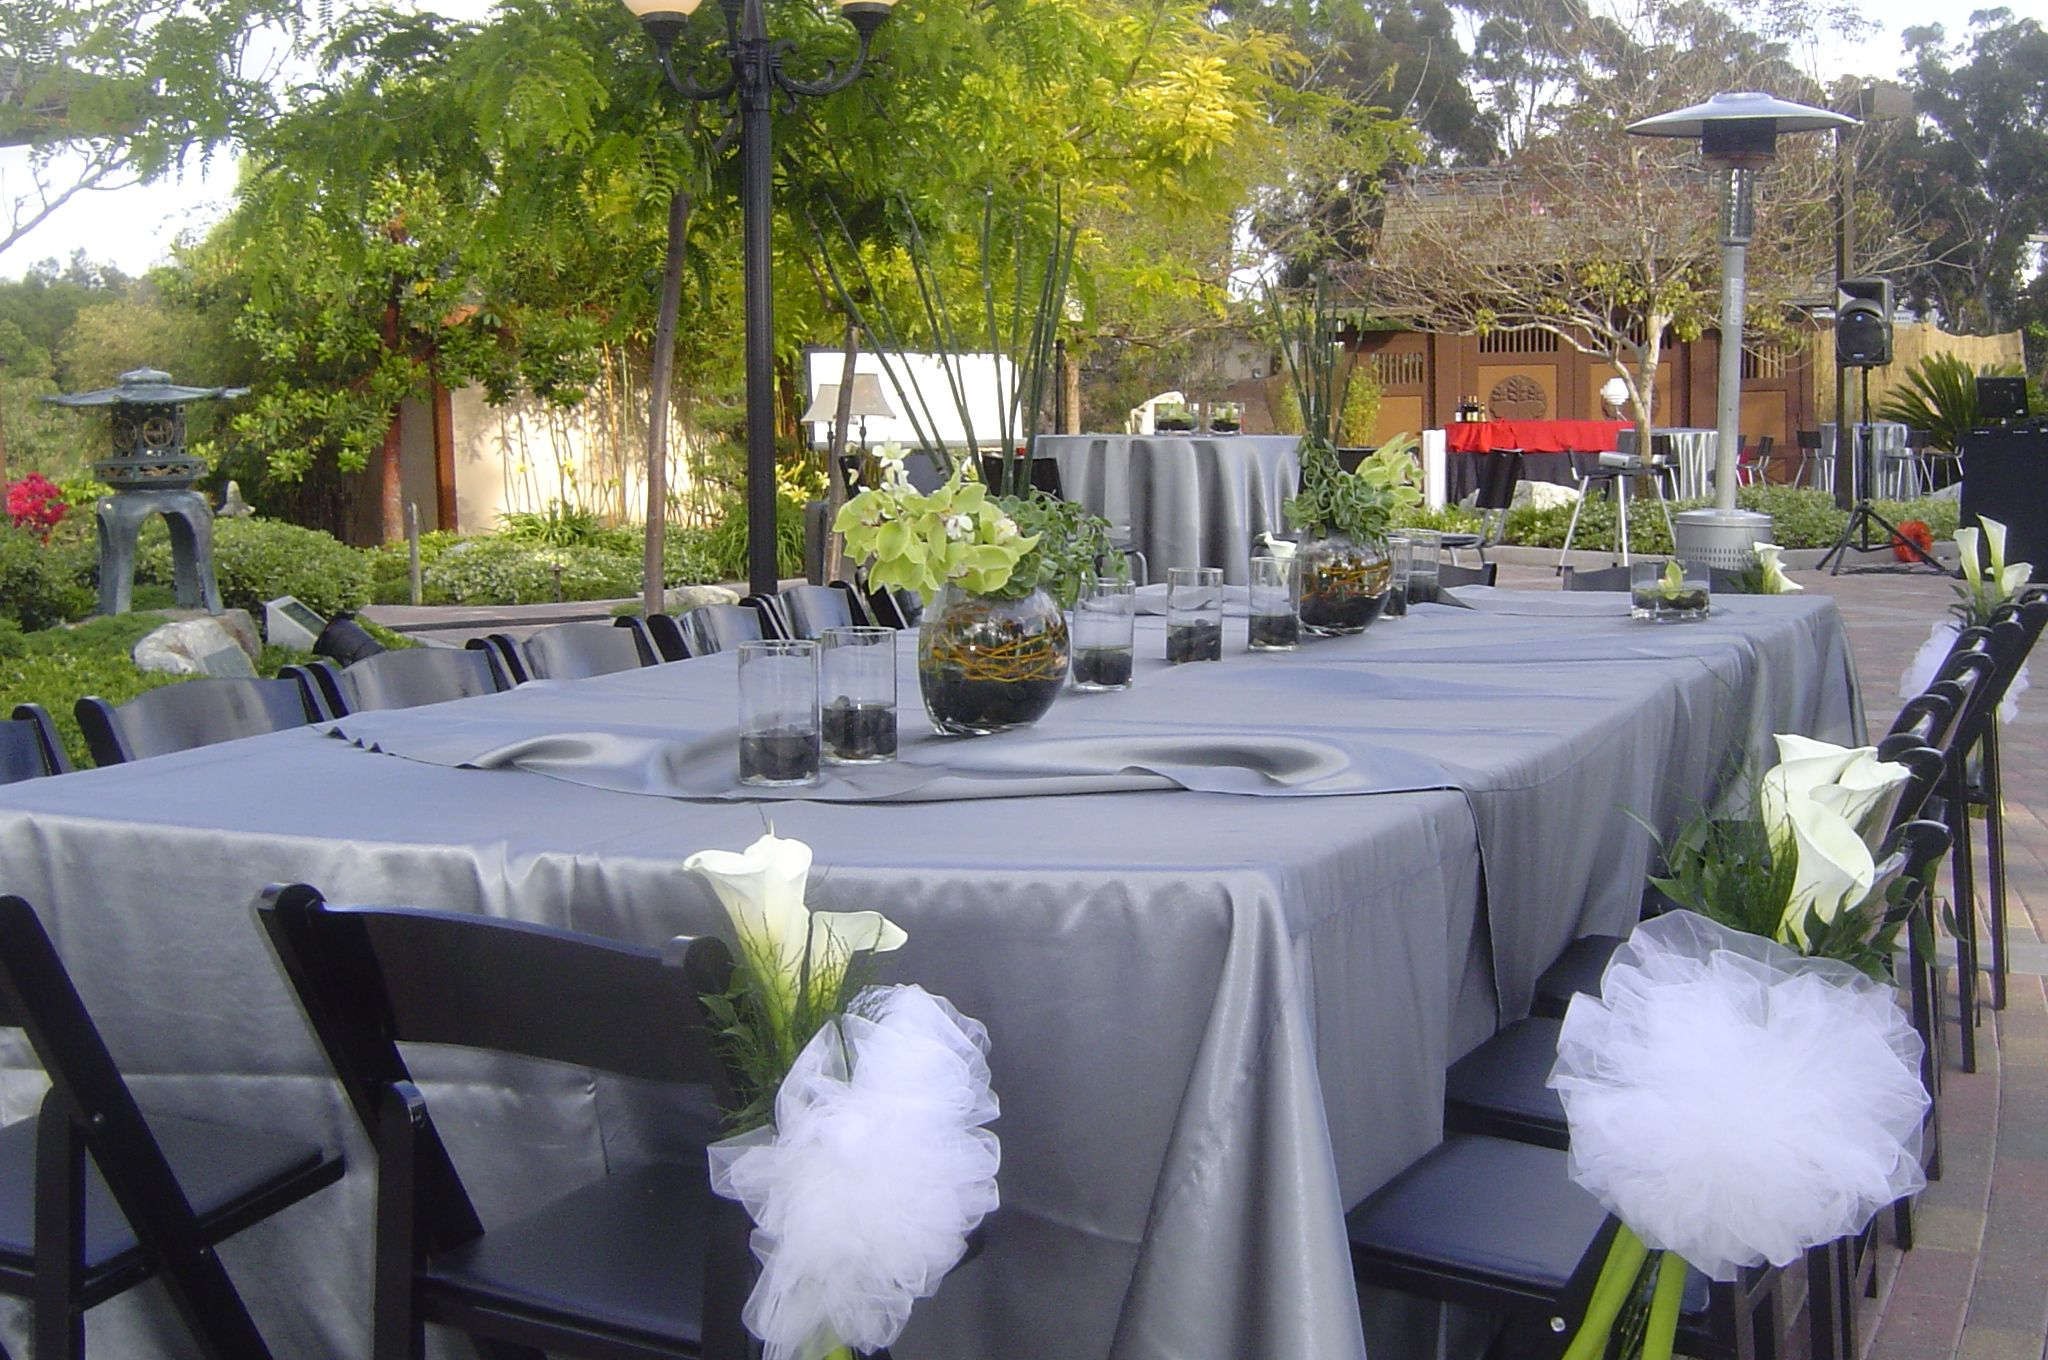 For information on hosting your wedding or event at the